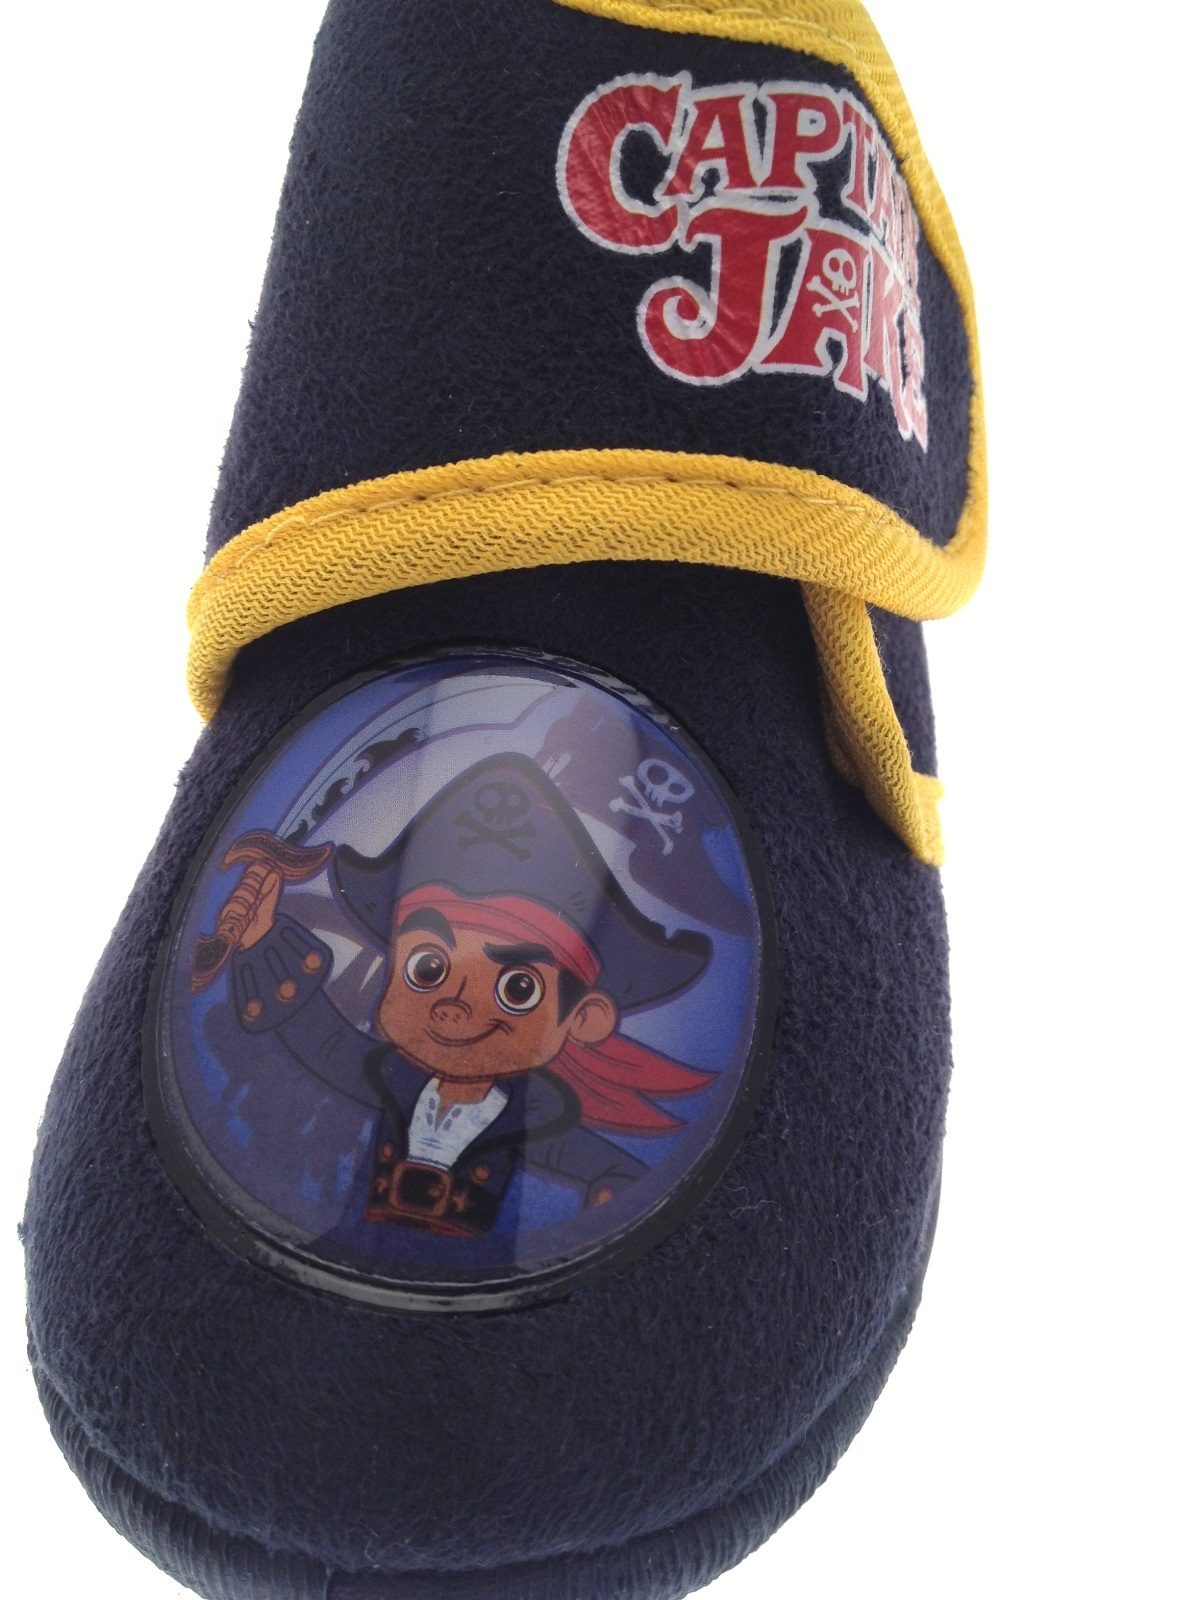 Boys Disney Jake And The Neverland Pirates Slippers Booties Kids Xmas Gift Size